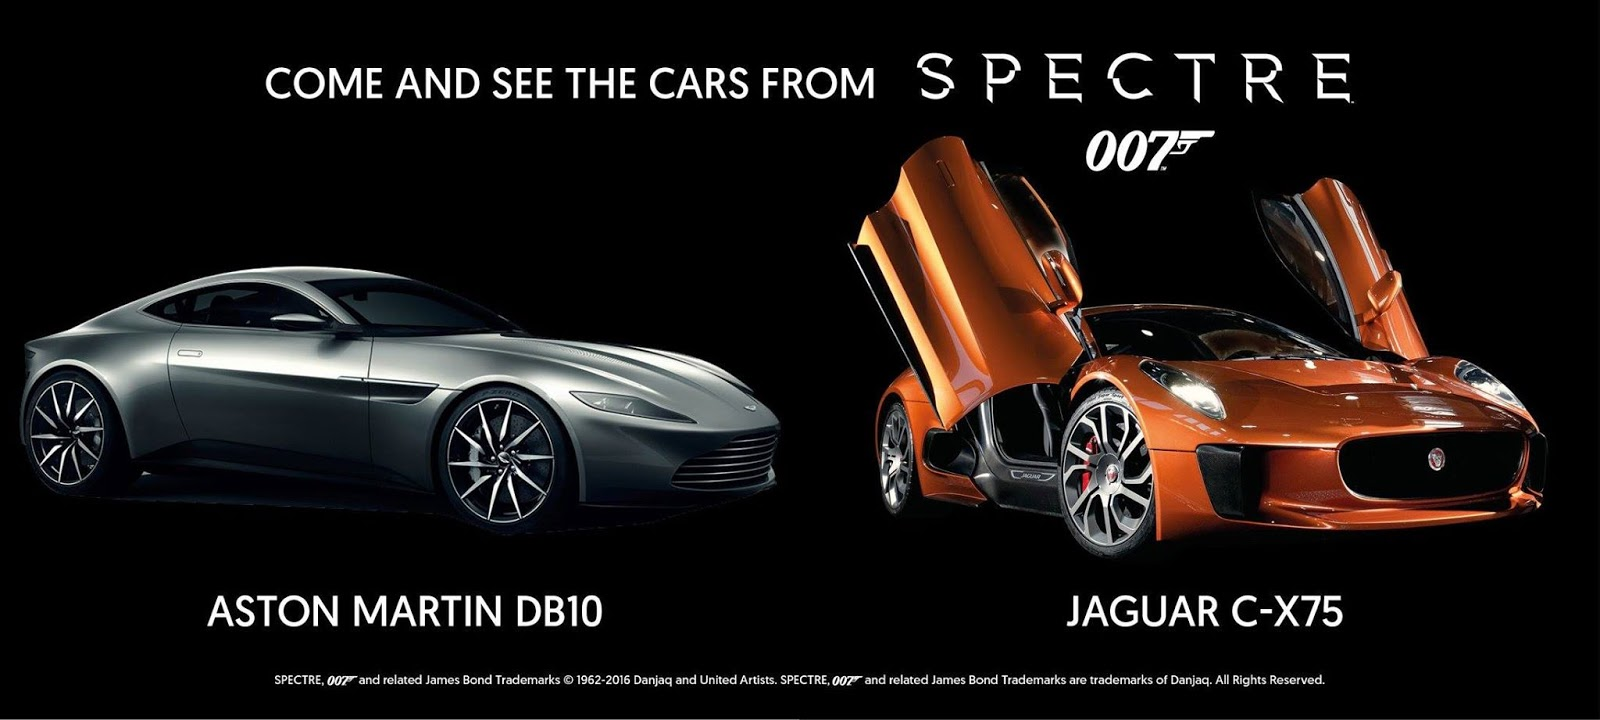 007 Travelers The Cars Of Spectre At Top Marques Monaco